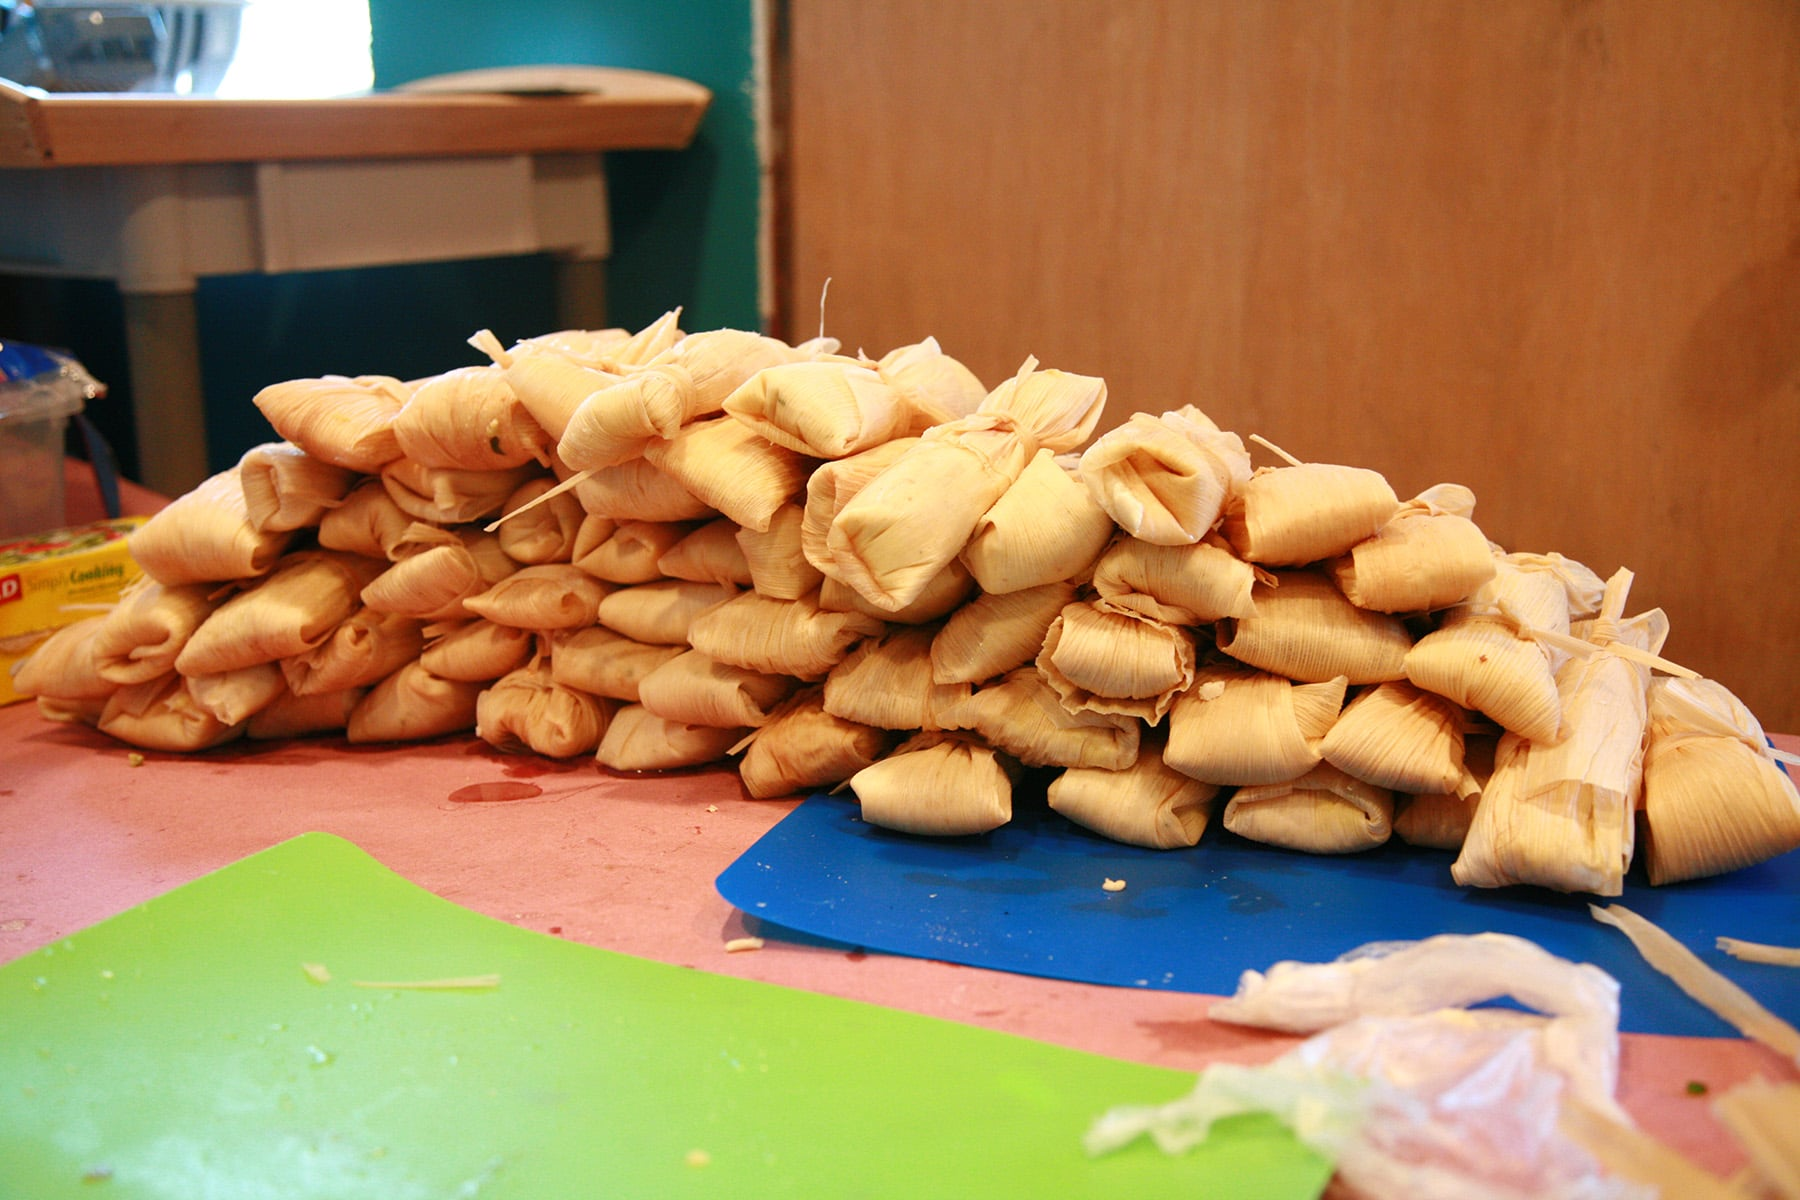 A large pile of wrapped tamales on a work table.